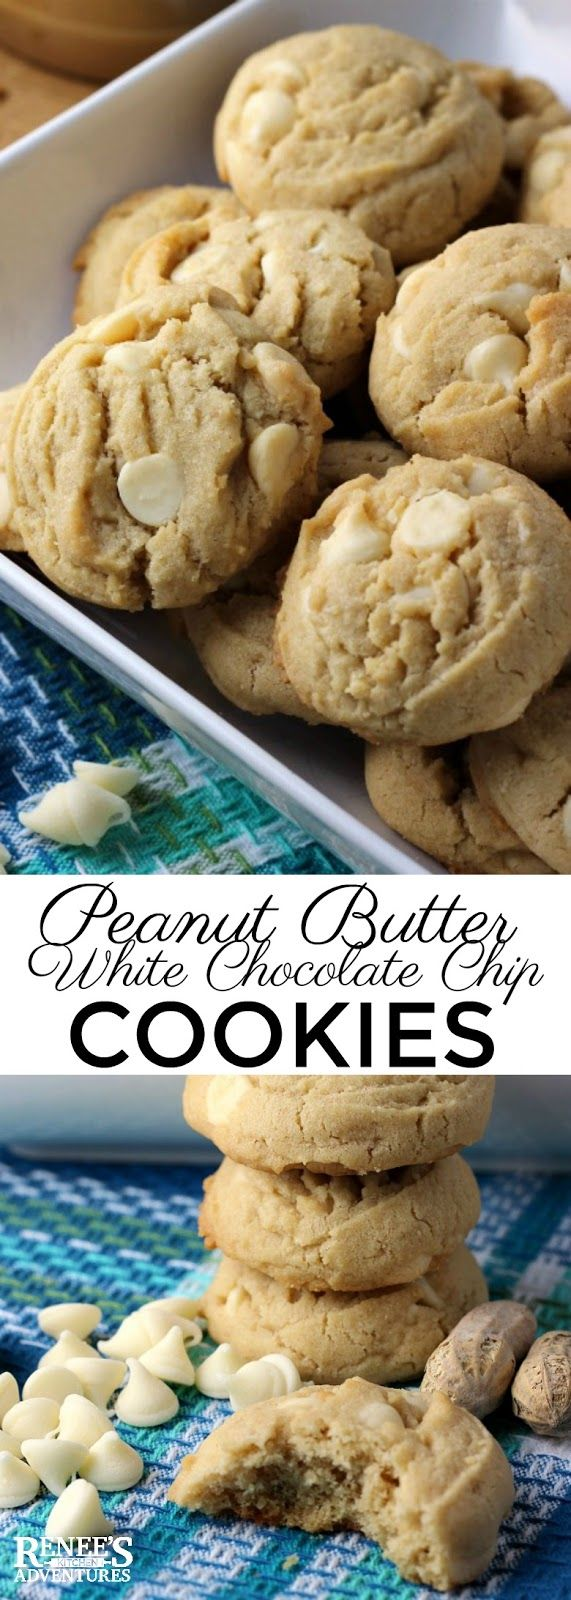 Peanut Butter White Chocolate Chip Cookies | Easy recipe for Peanut Butter White Chocolate Chip Cookies. Perfect a perfect addition to your holiday baking menu! Rich peanut butter cookies are studded with lots of white chocolate chips and sprinkled with a little salt. These cookies are delicious!